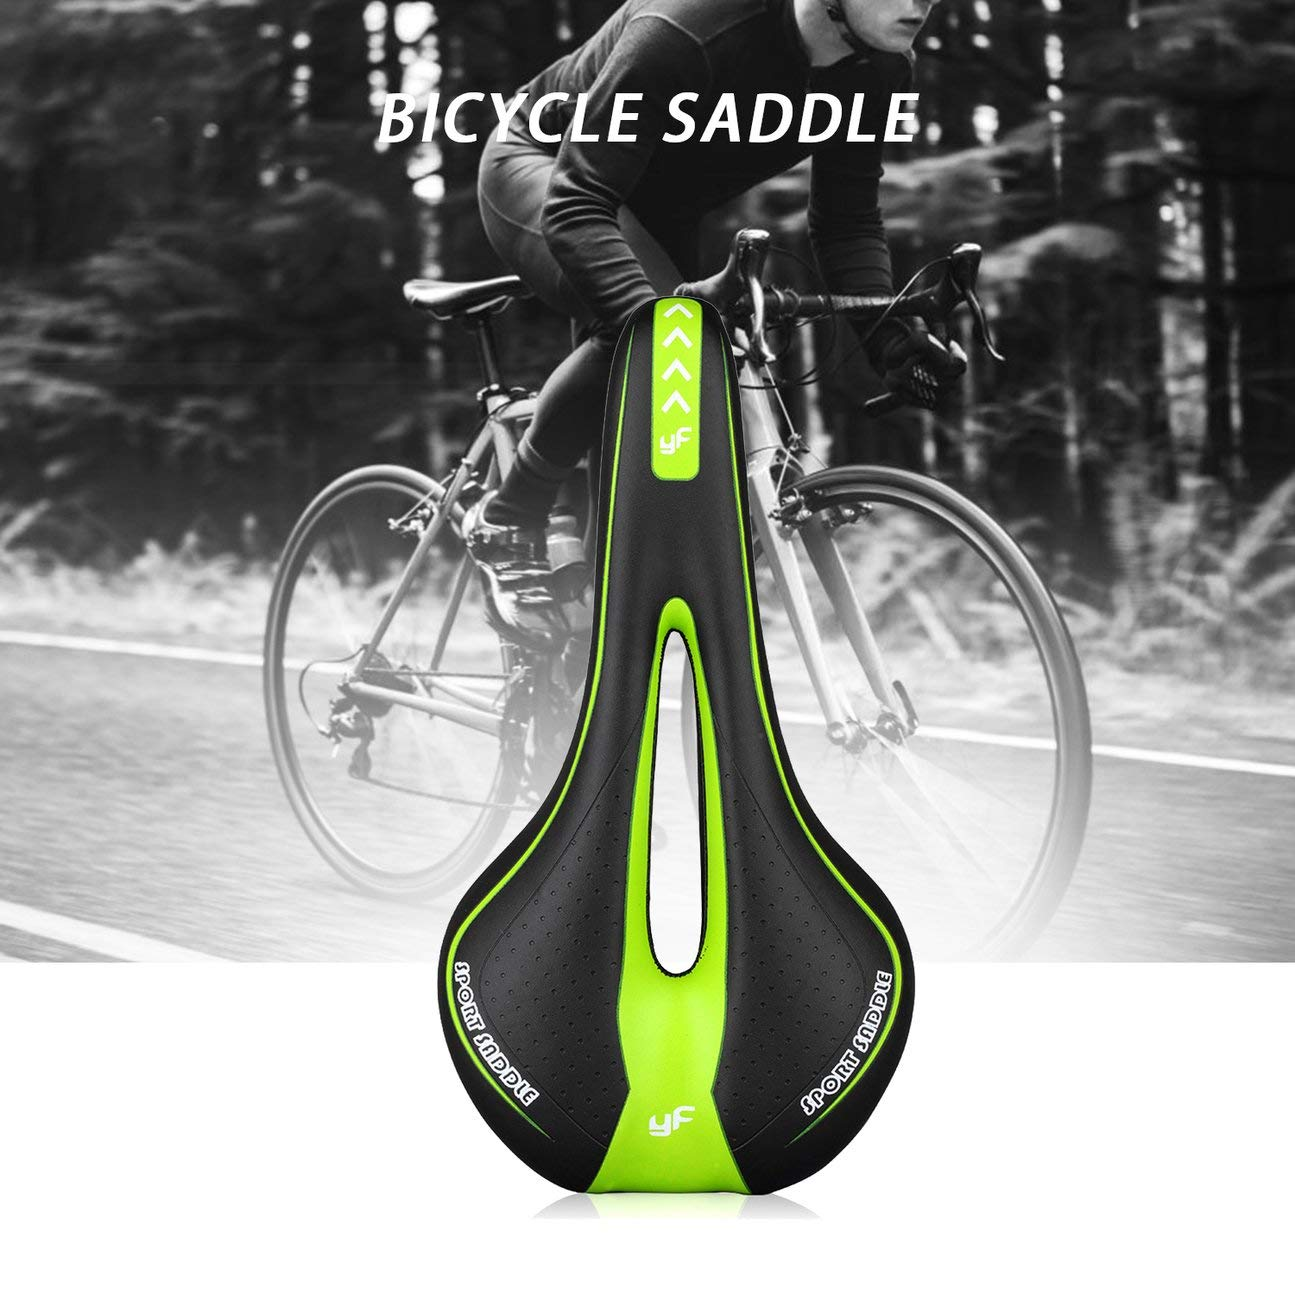 HIPENGYANBAIHU Sill/ín de Bicicleta Mountain Bike Hollow Saddle Racing Bike Saddle Riding Equipment Coj/ín de Bicicleta de monta/ña